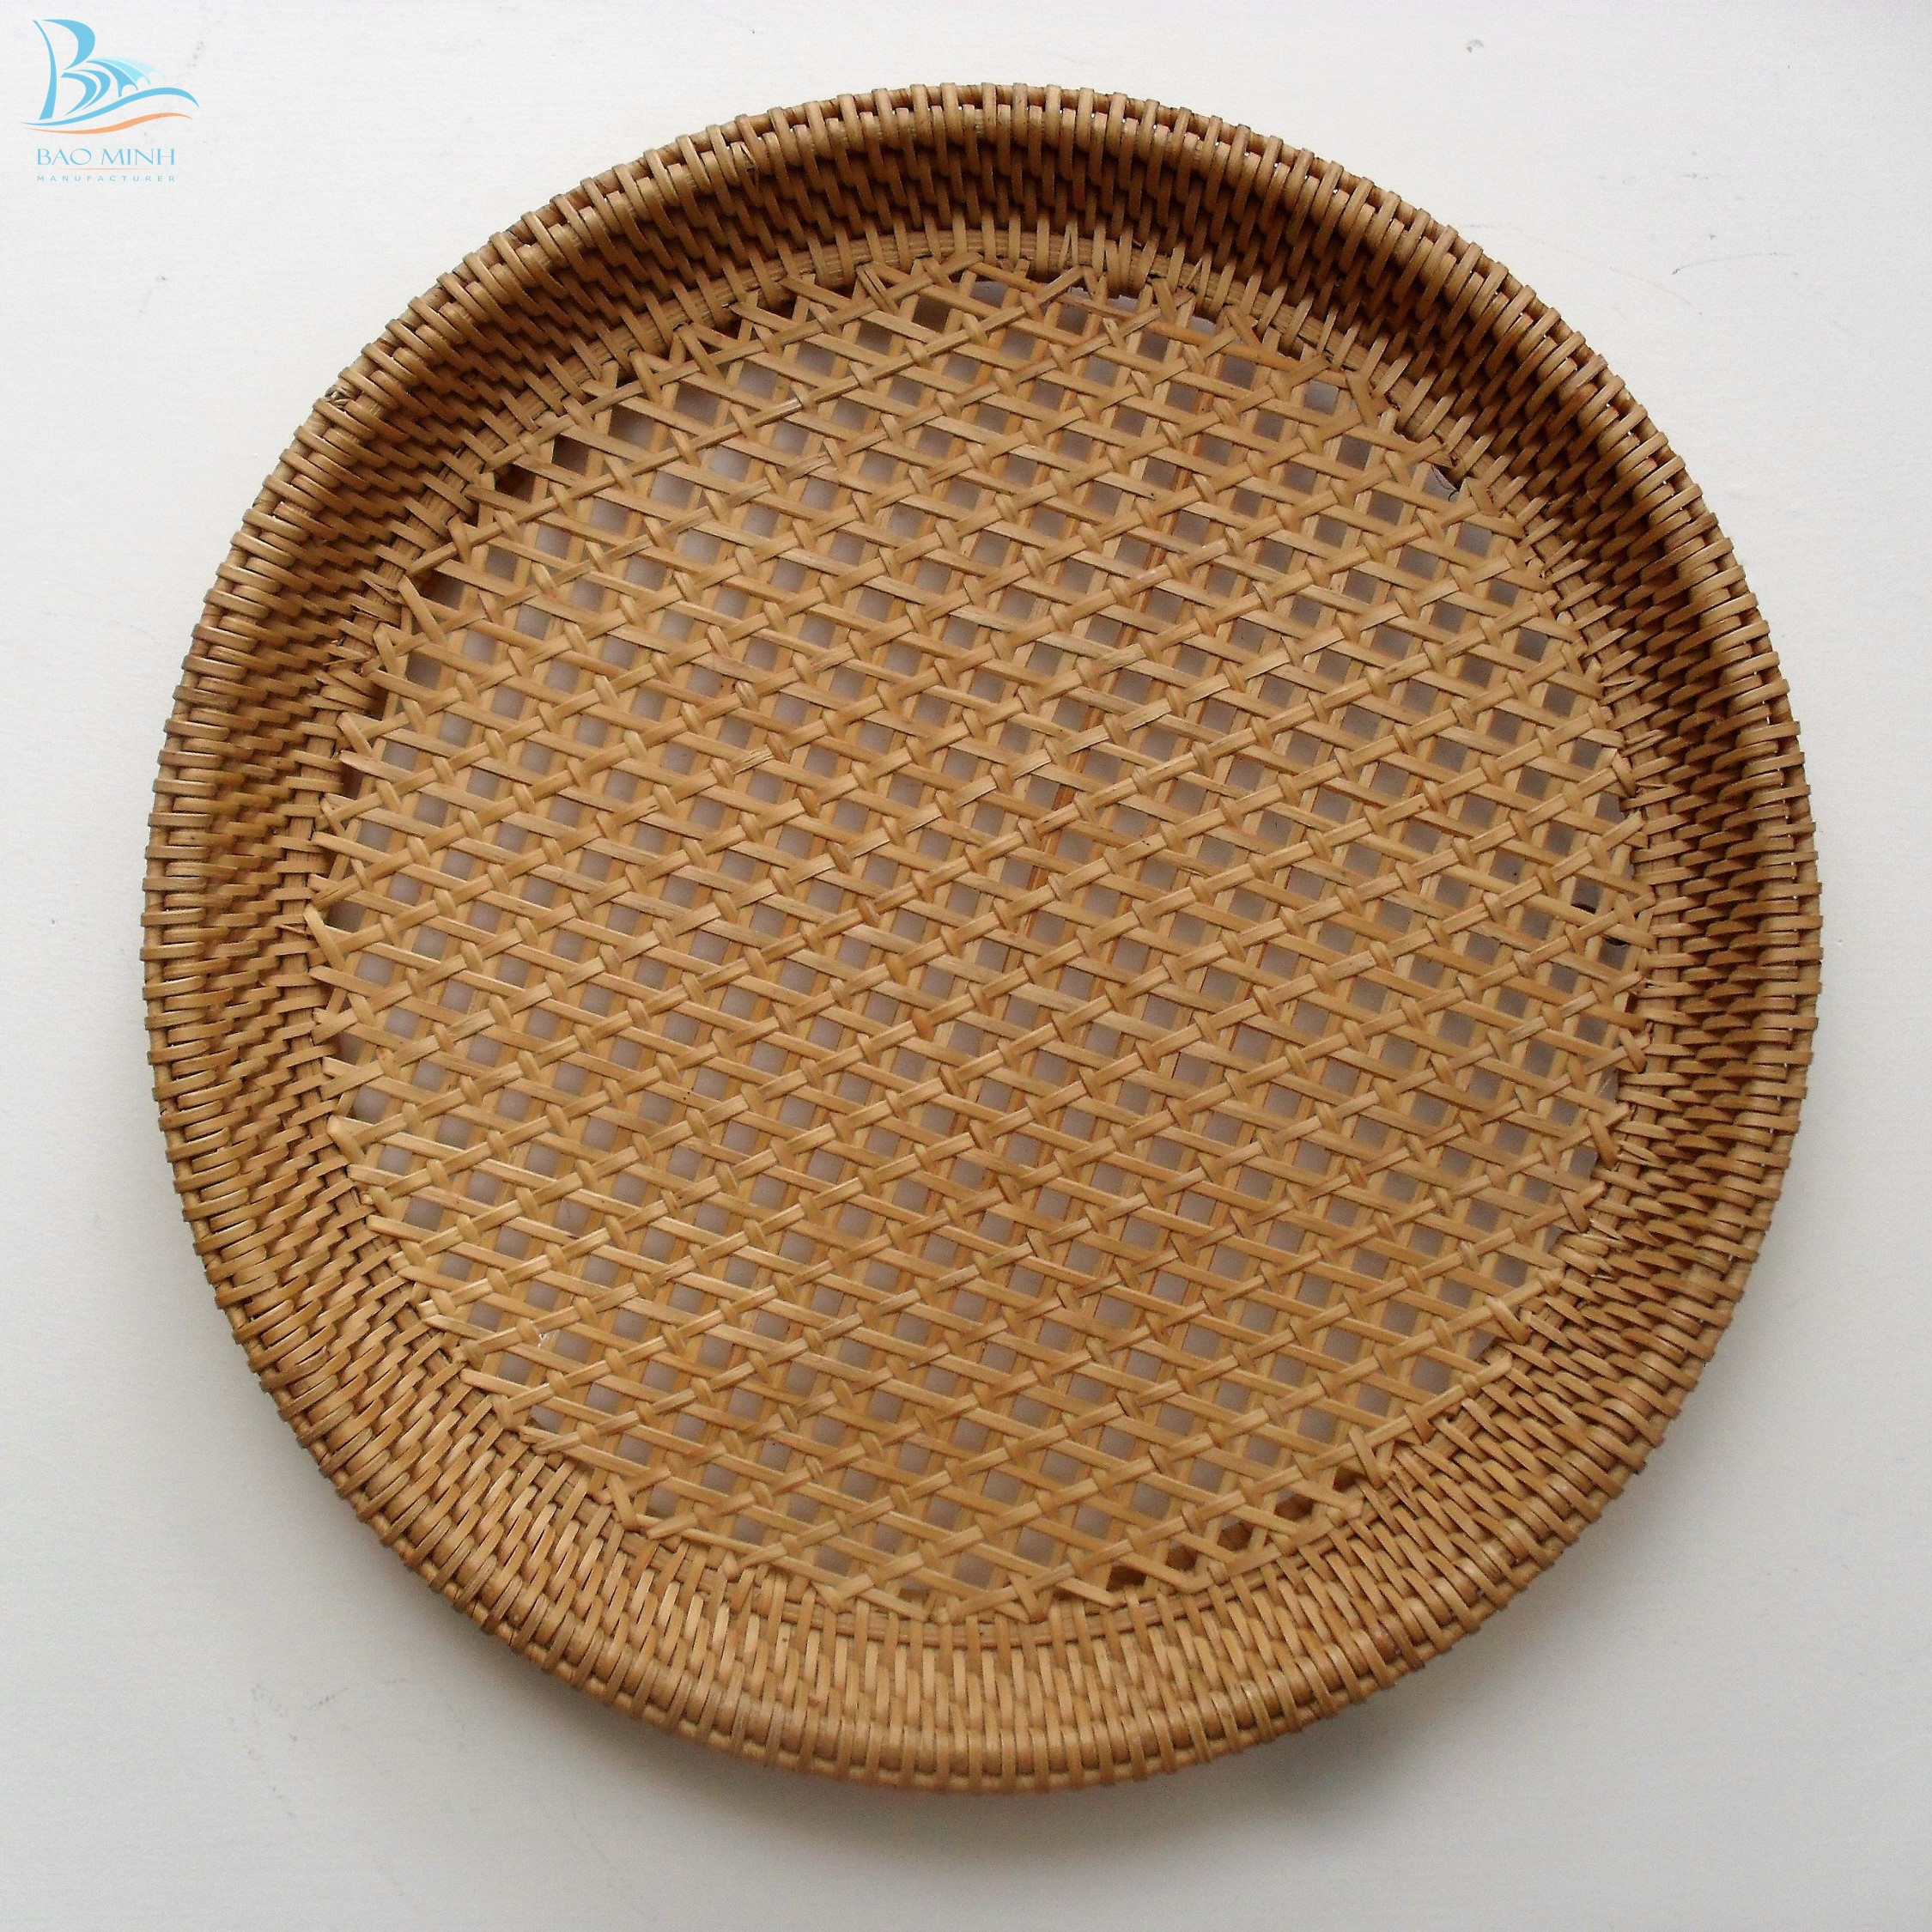 Rattan Wall Hanging Basket From Vietnam Wall Hanging Art For Decoration View Hanging Basket Bao Minh Product Details From Bao Minh Manufacturer Joint Stock Company On Alibaba Com